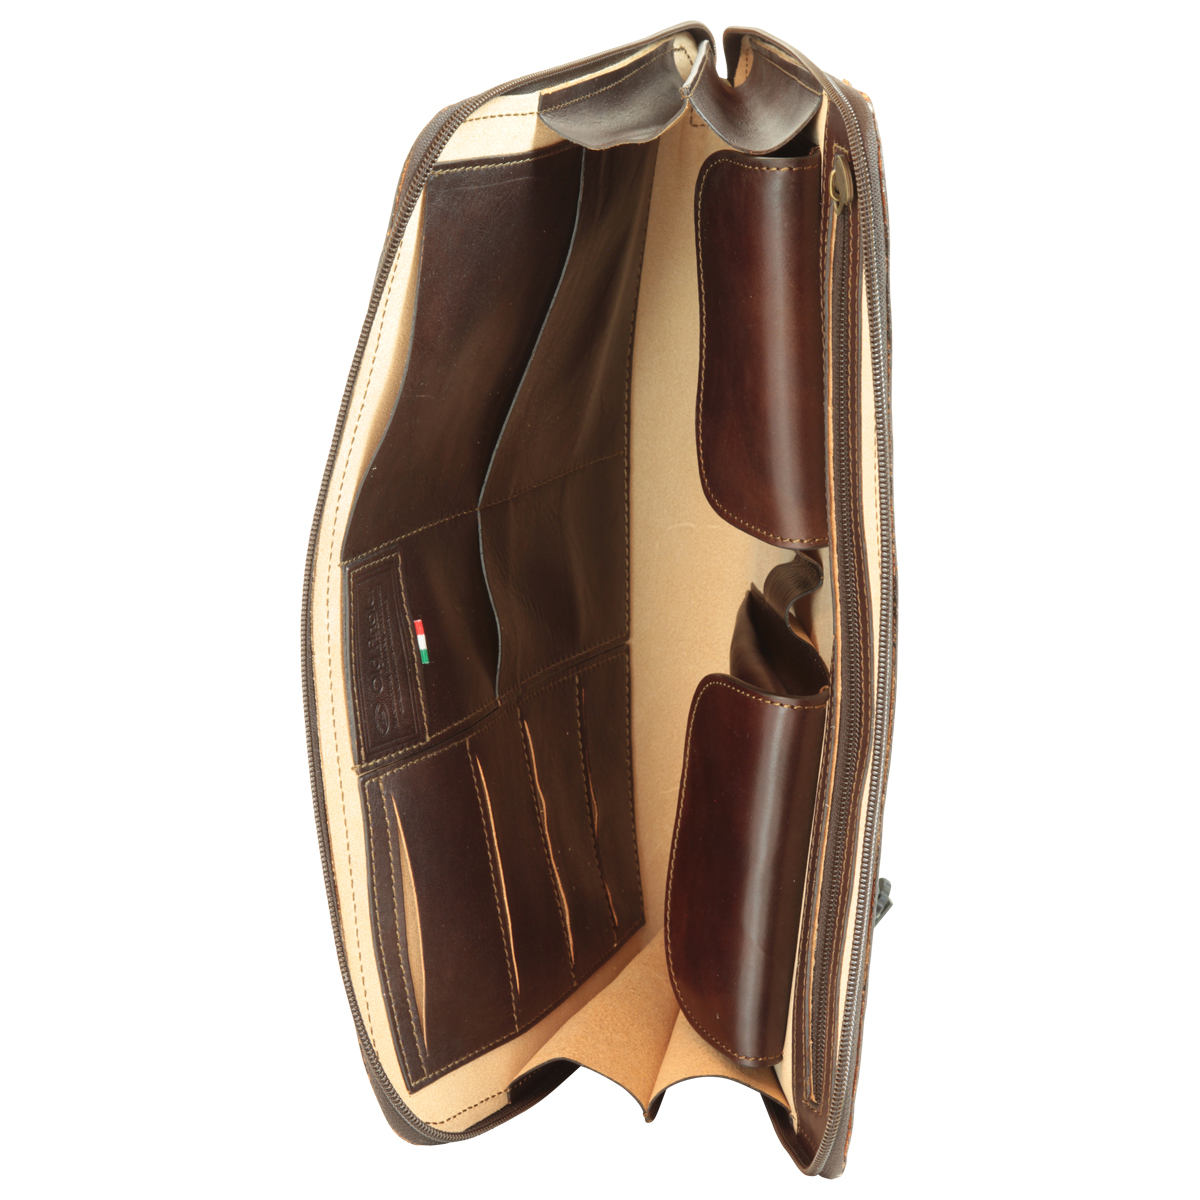 Leather Folder - Dark Brown | 056889TM E | Old Angler Firenze